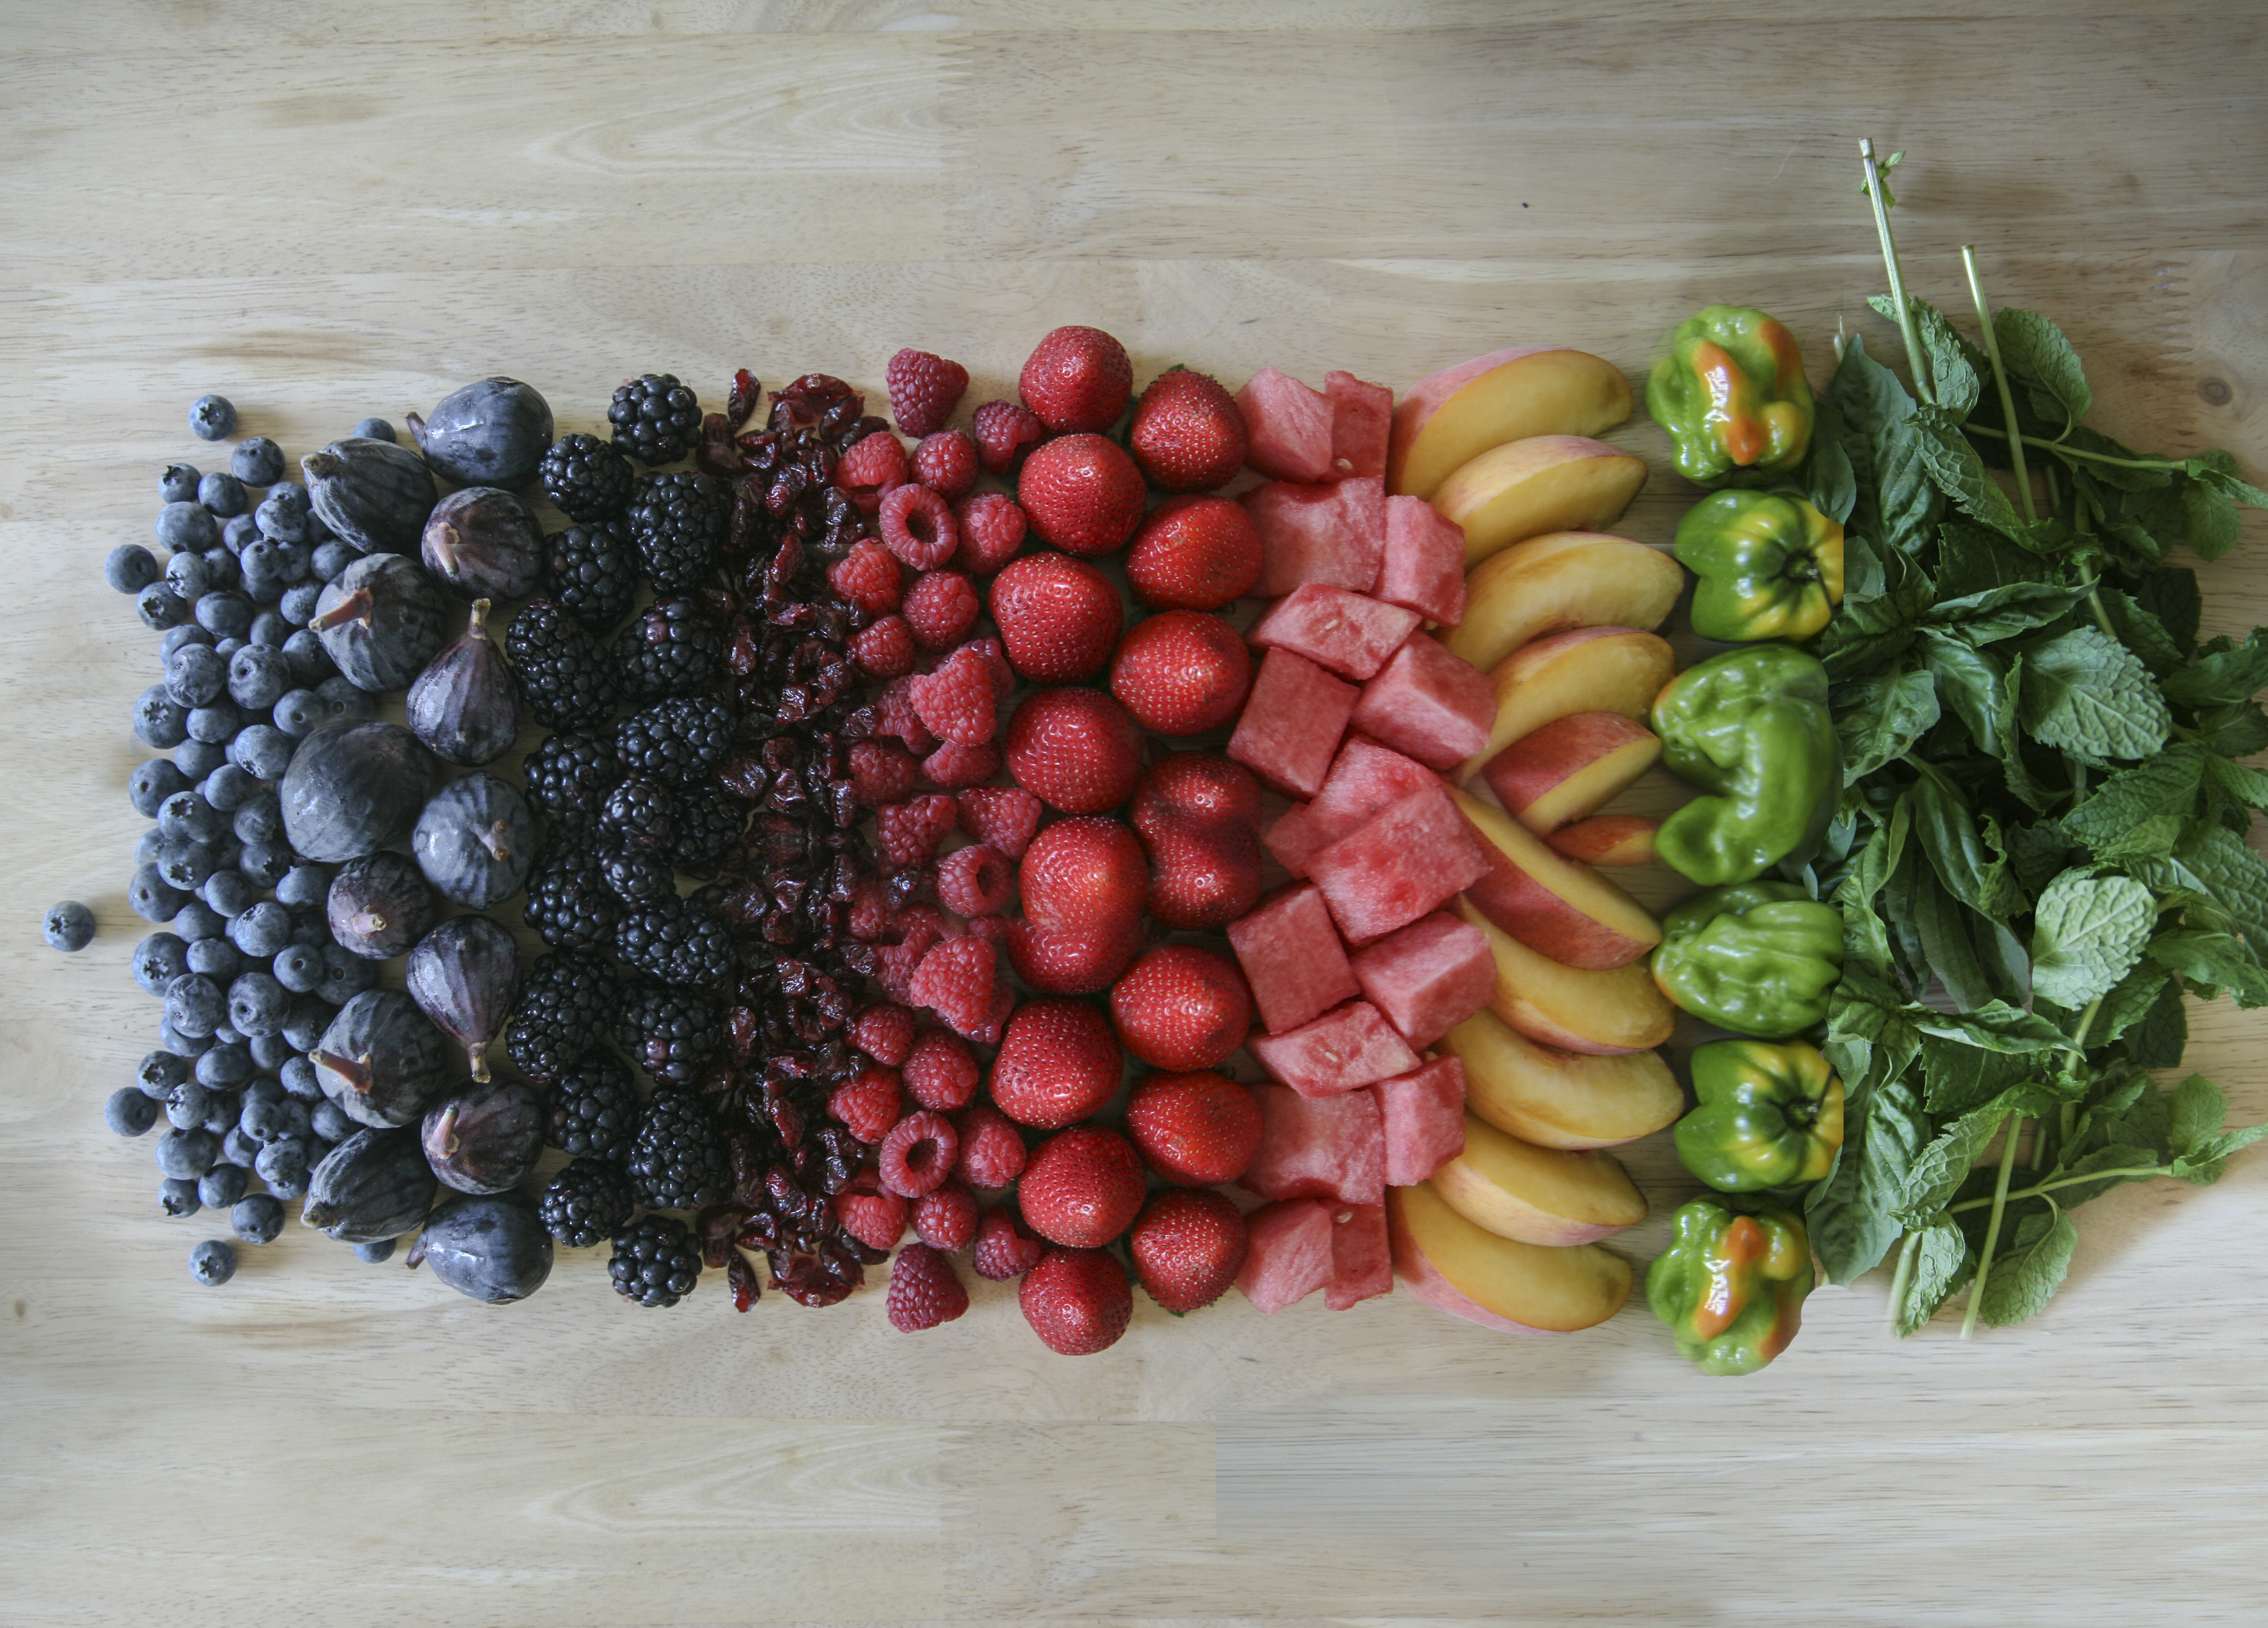 The American Institute for Cancer Research recommends a rainbow diet